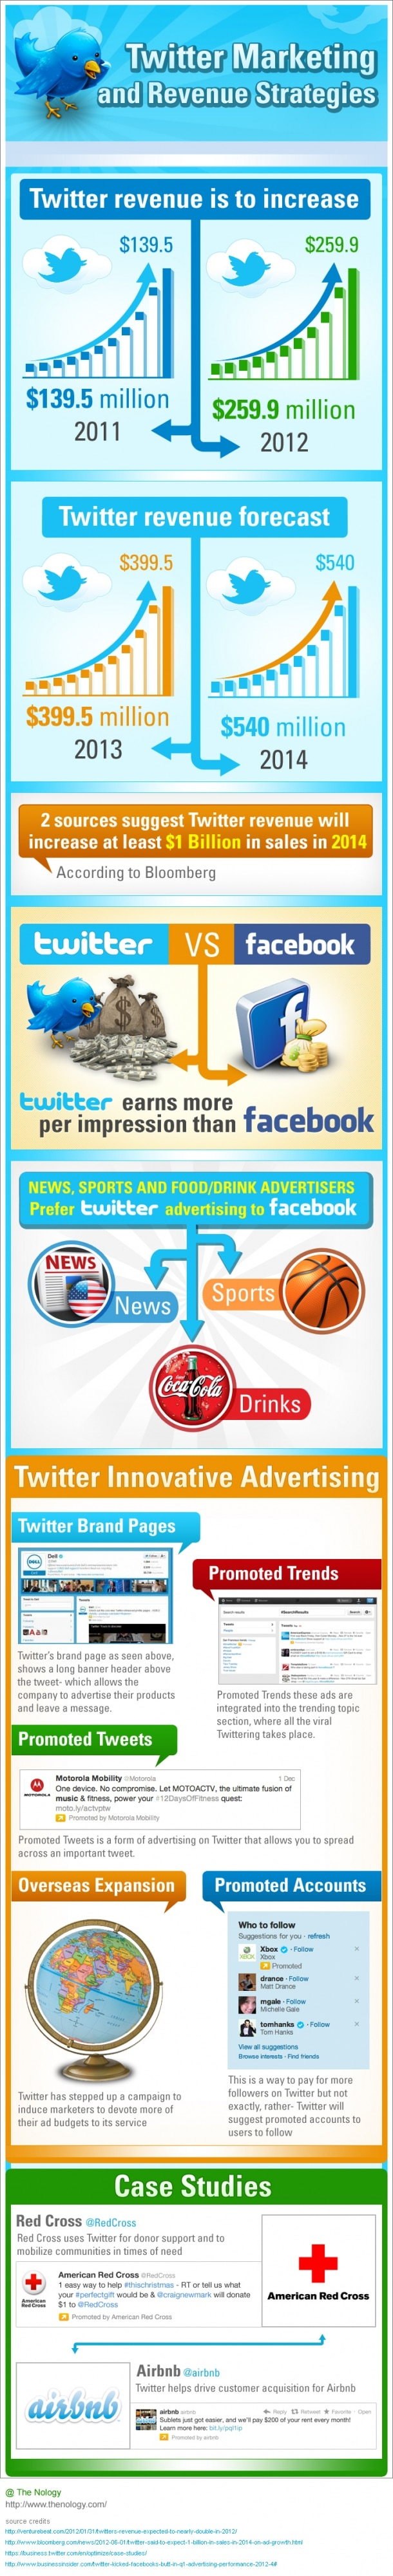 twitter-revenue-and-marketing-strategies